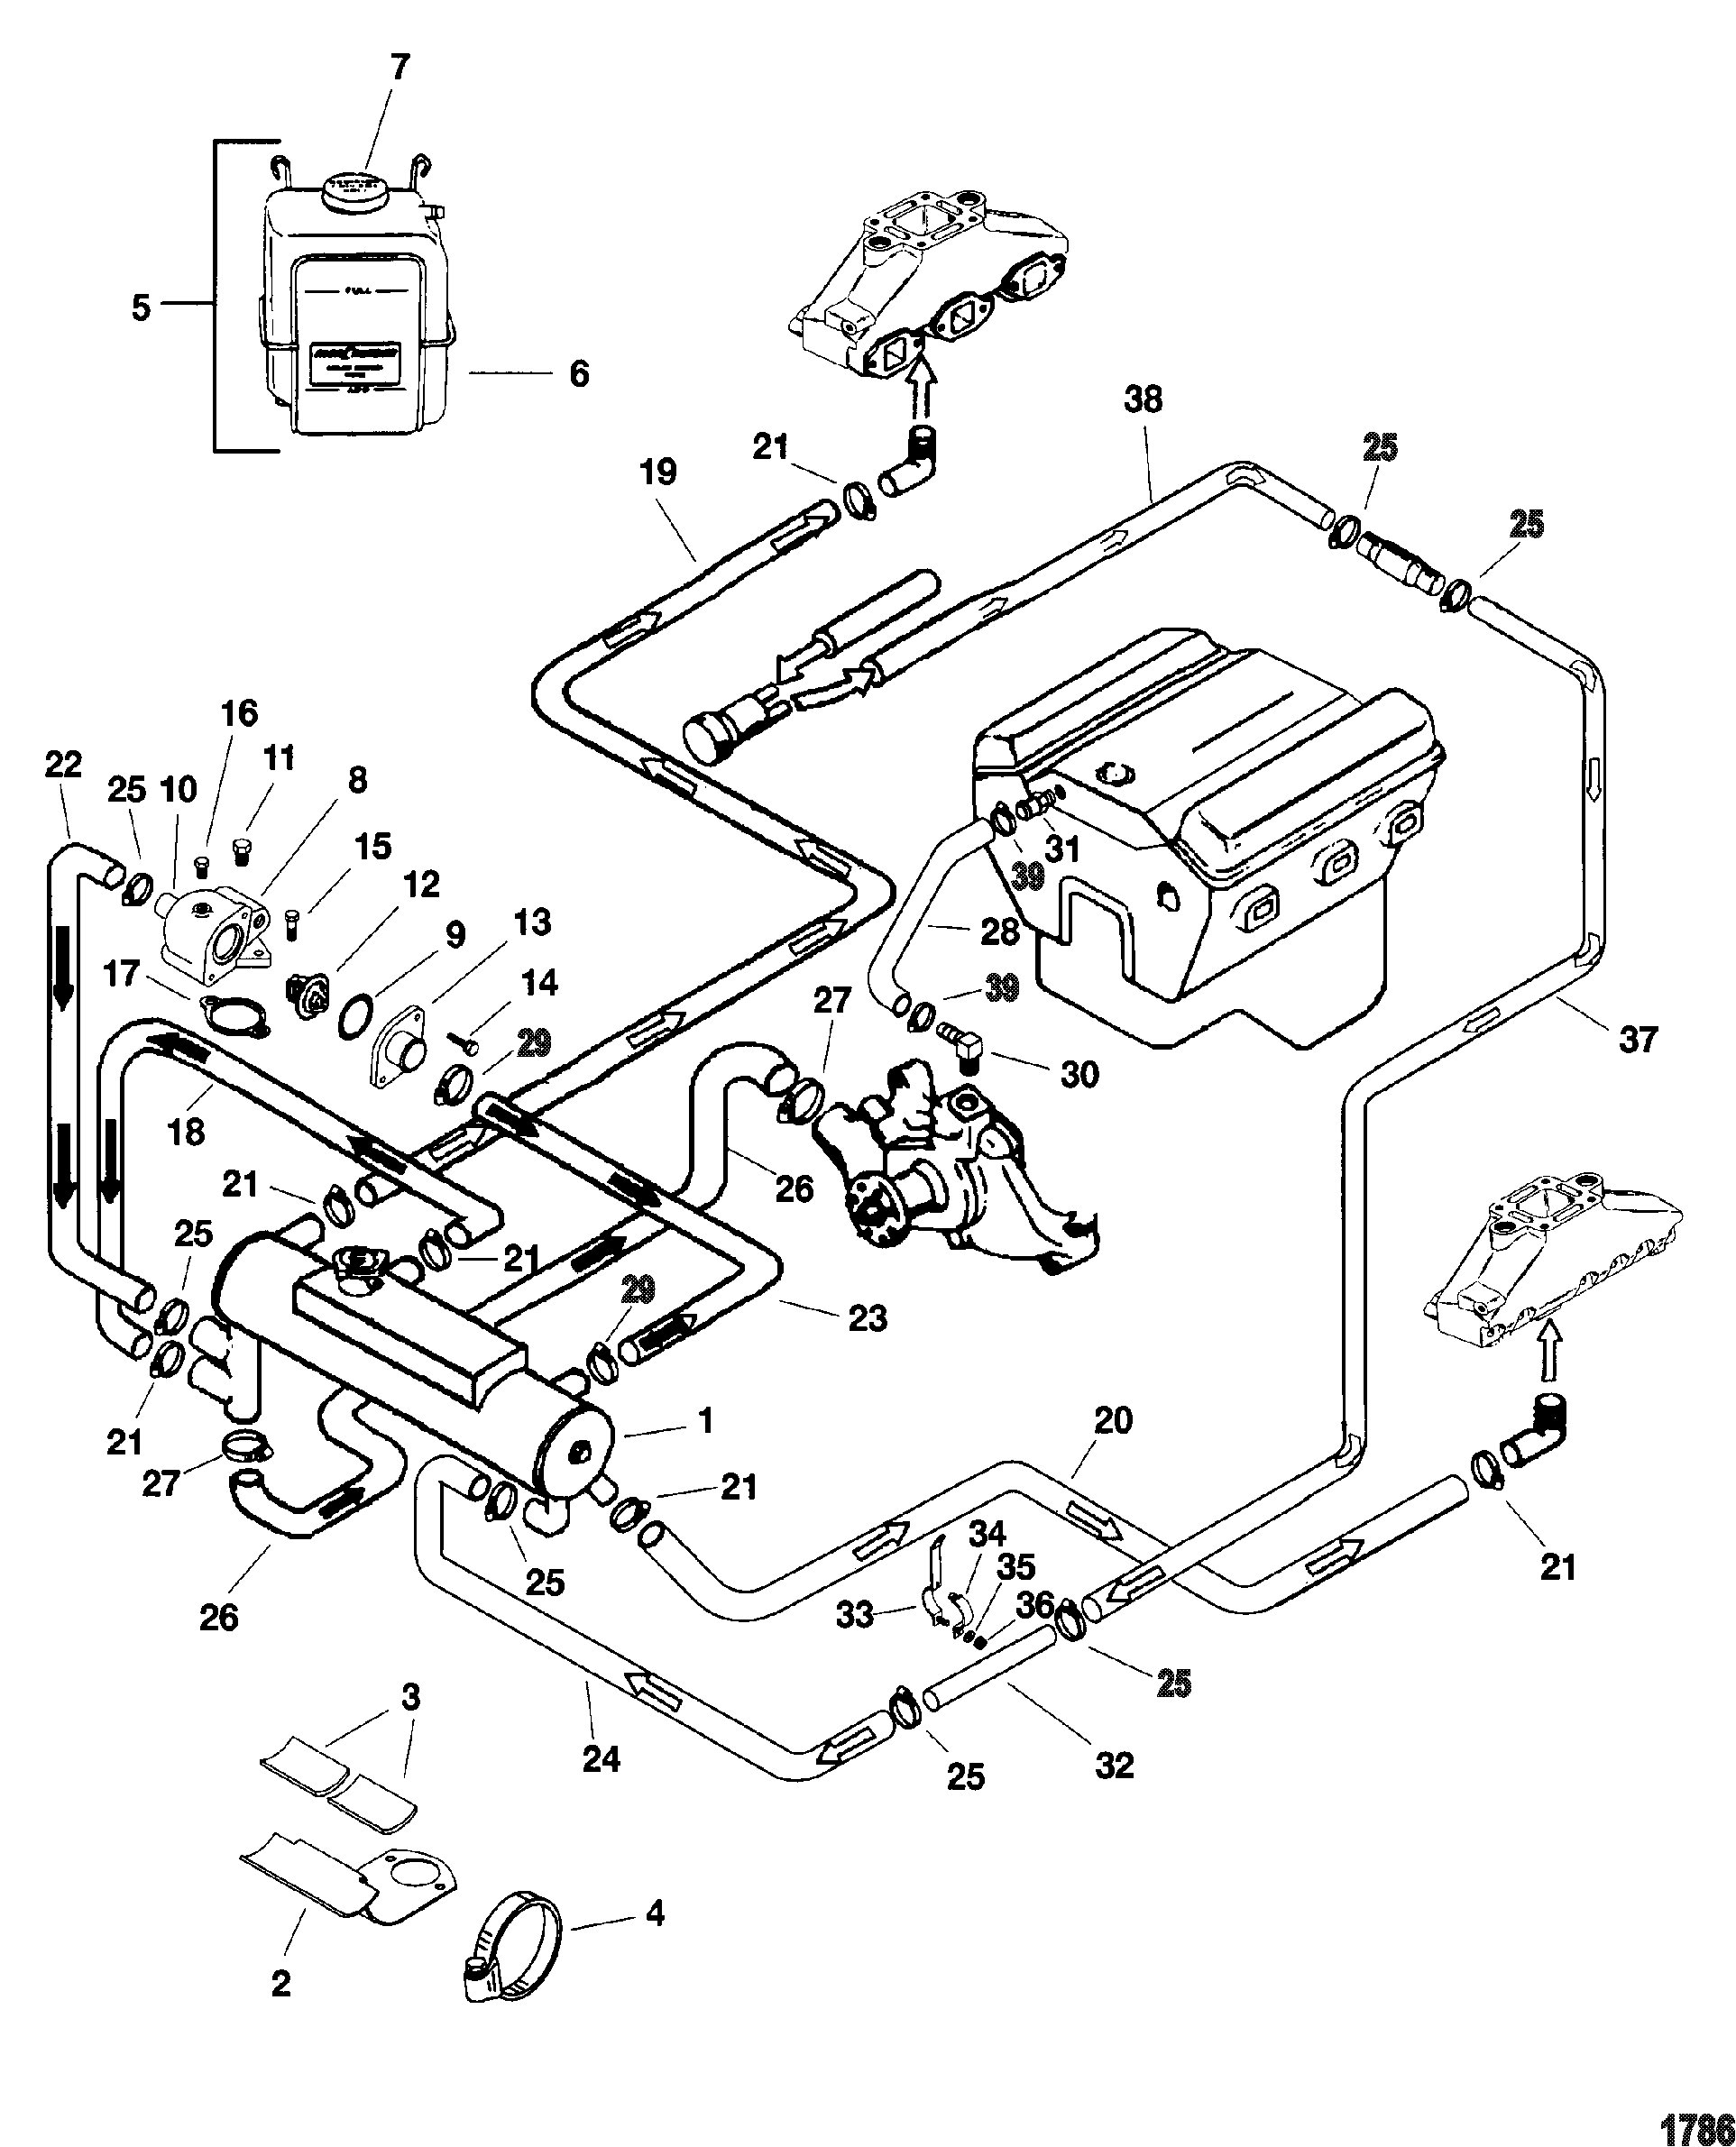 1998 Dodge Caravan 3 3l Engine Diagram Opinions About Wiring 2009 Grand